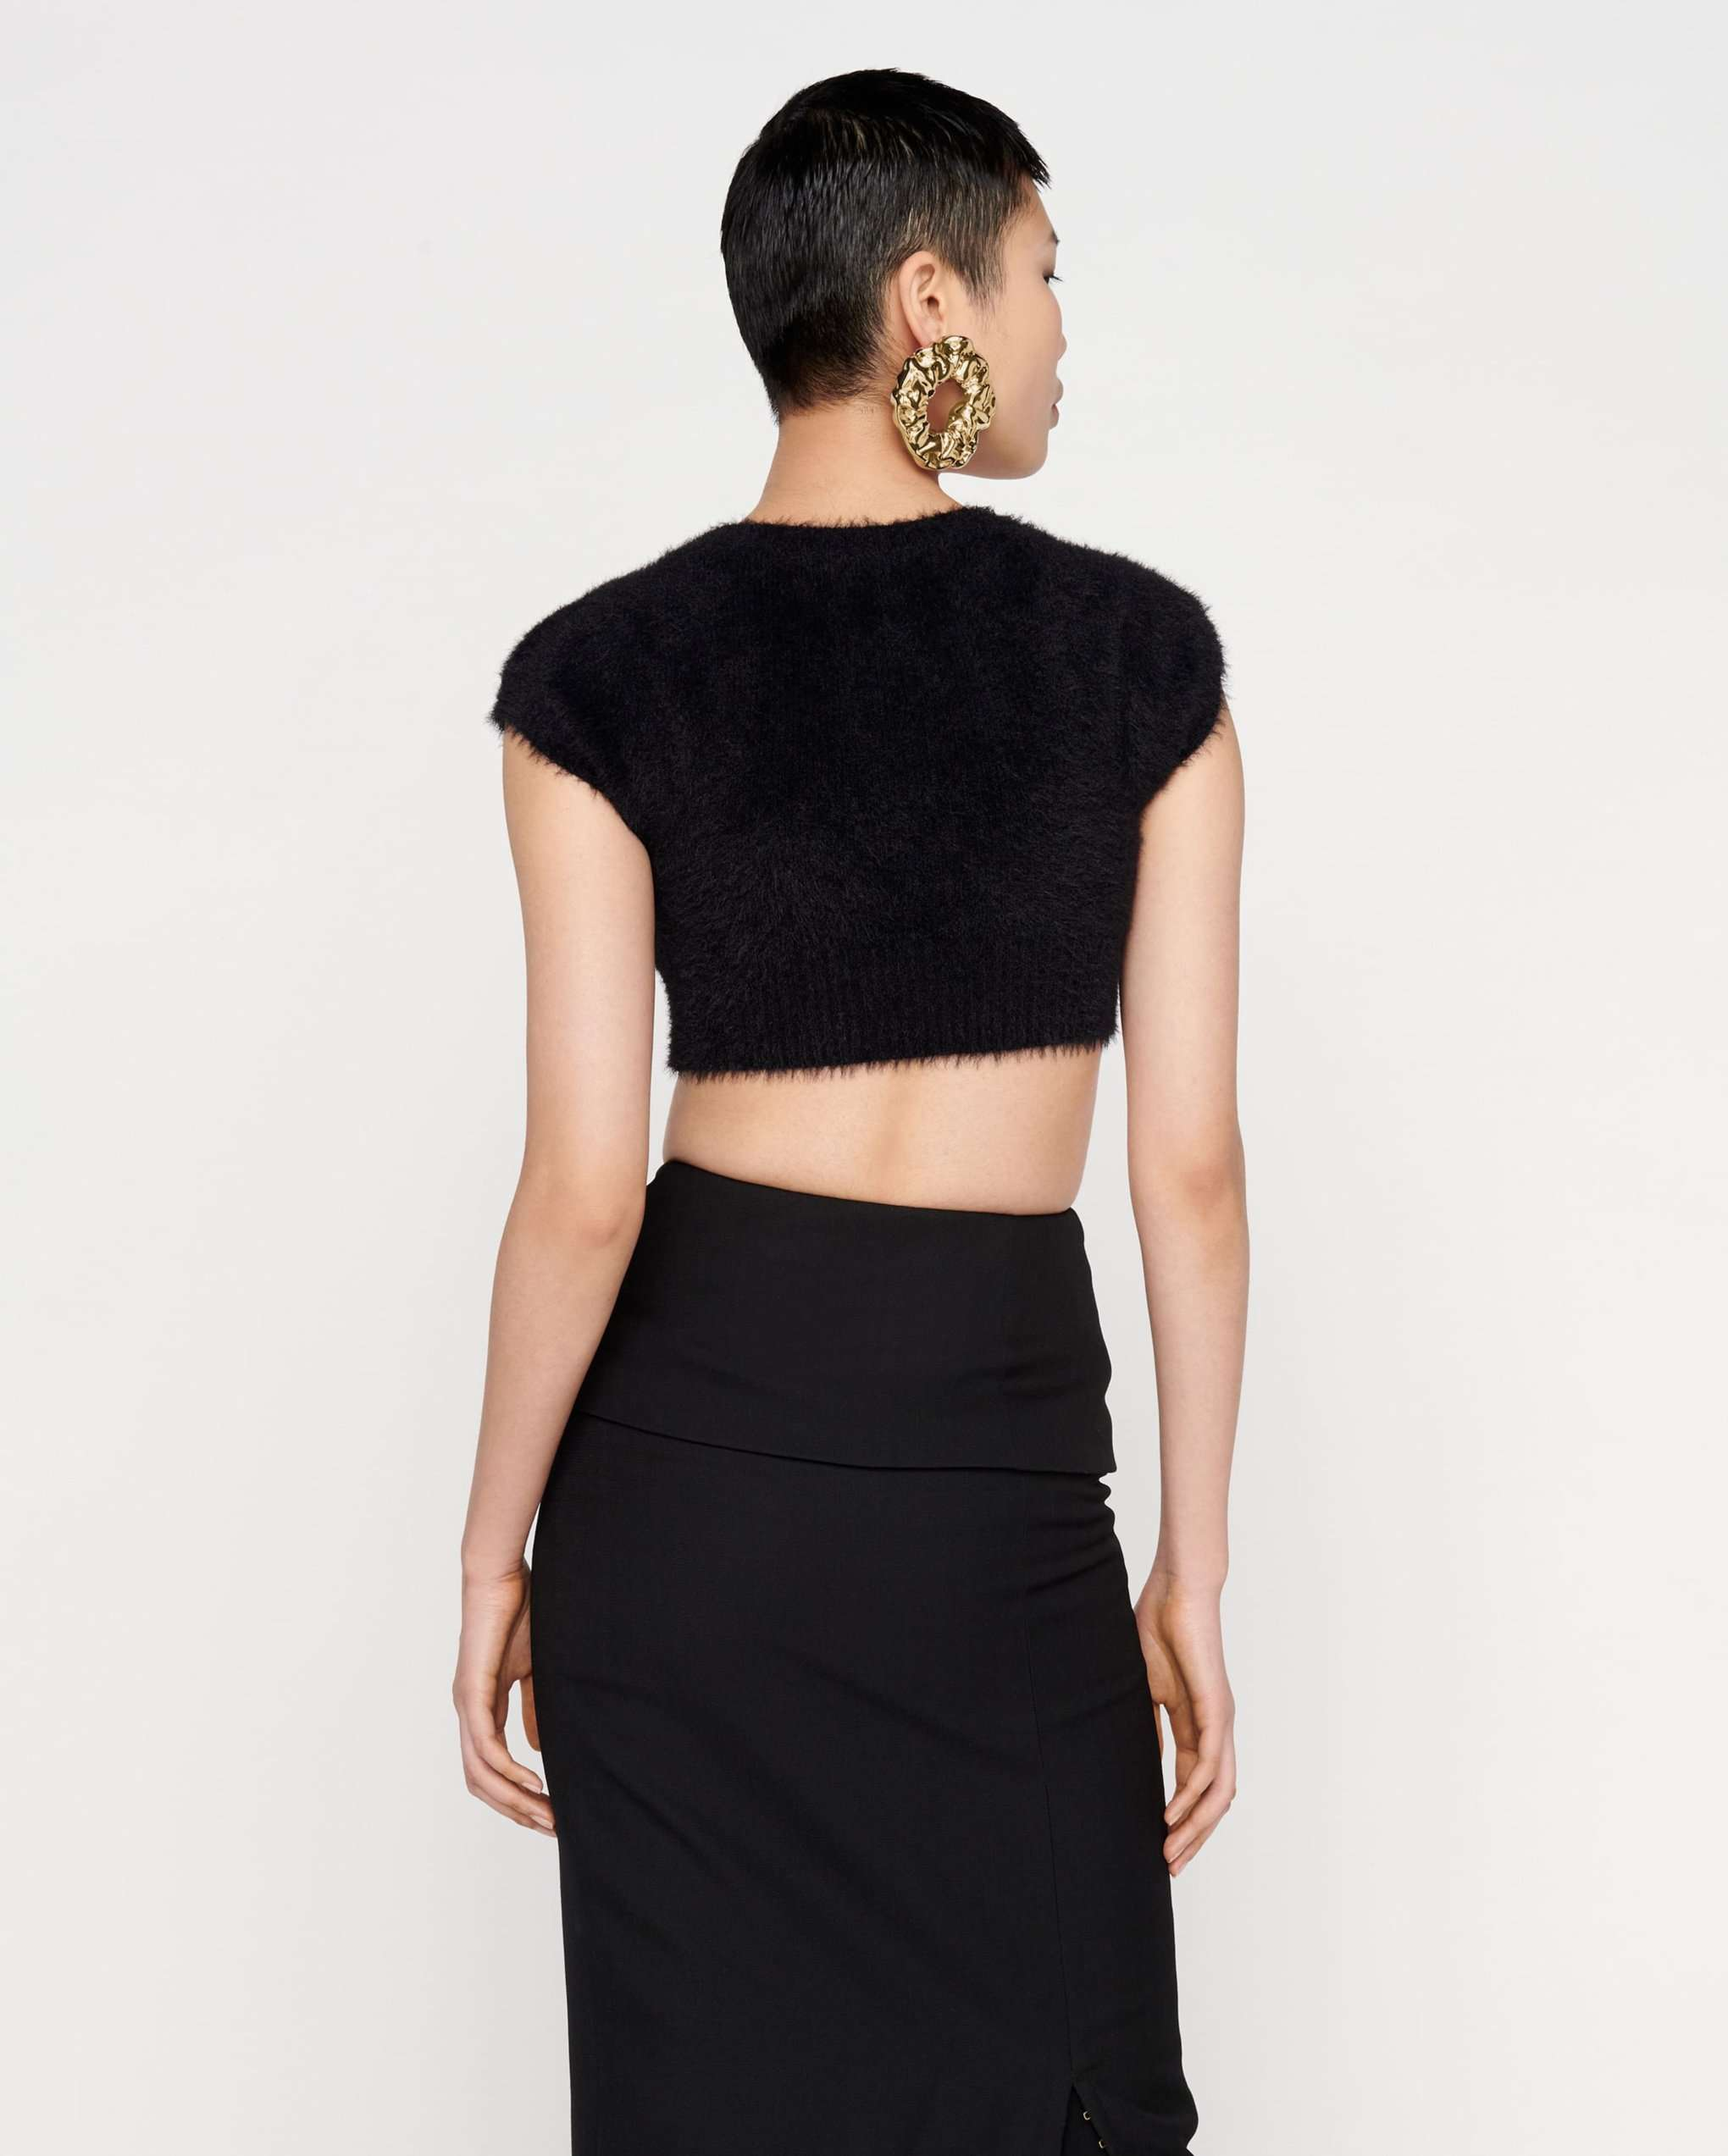 Cropped cardigan back view by Jacquemus. credit Jacquemus